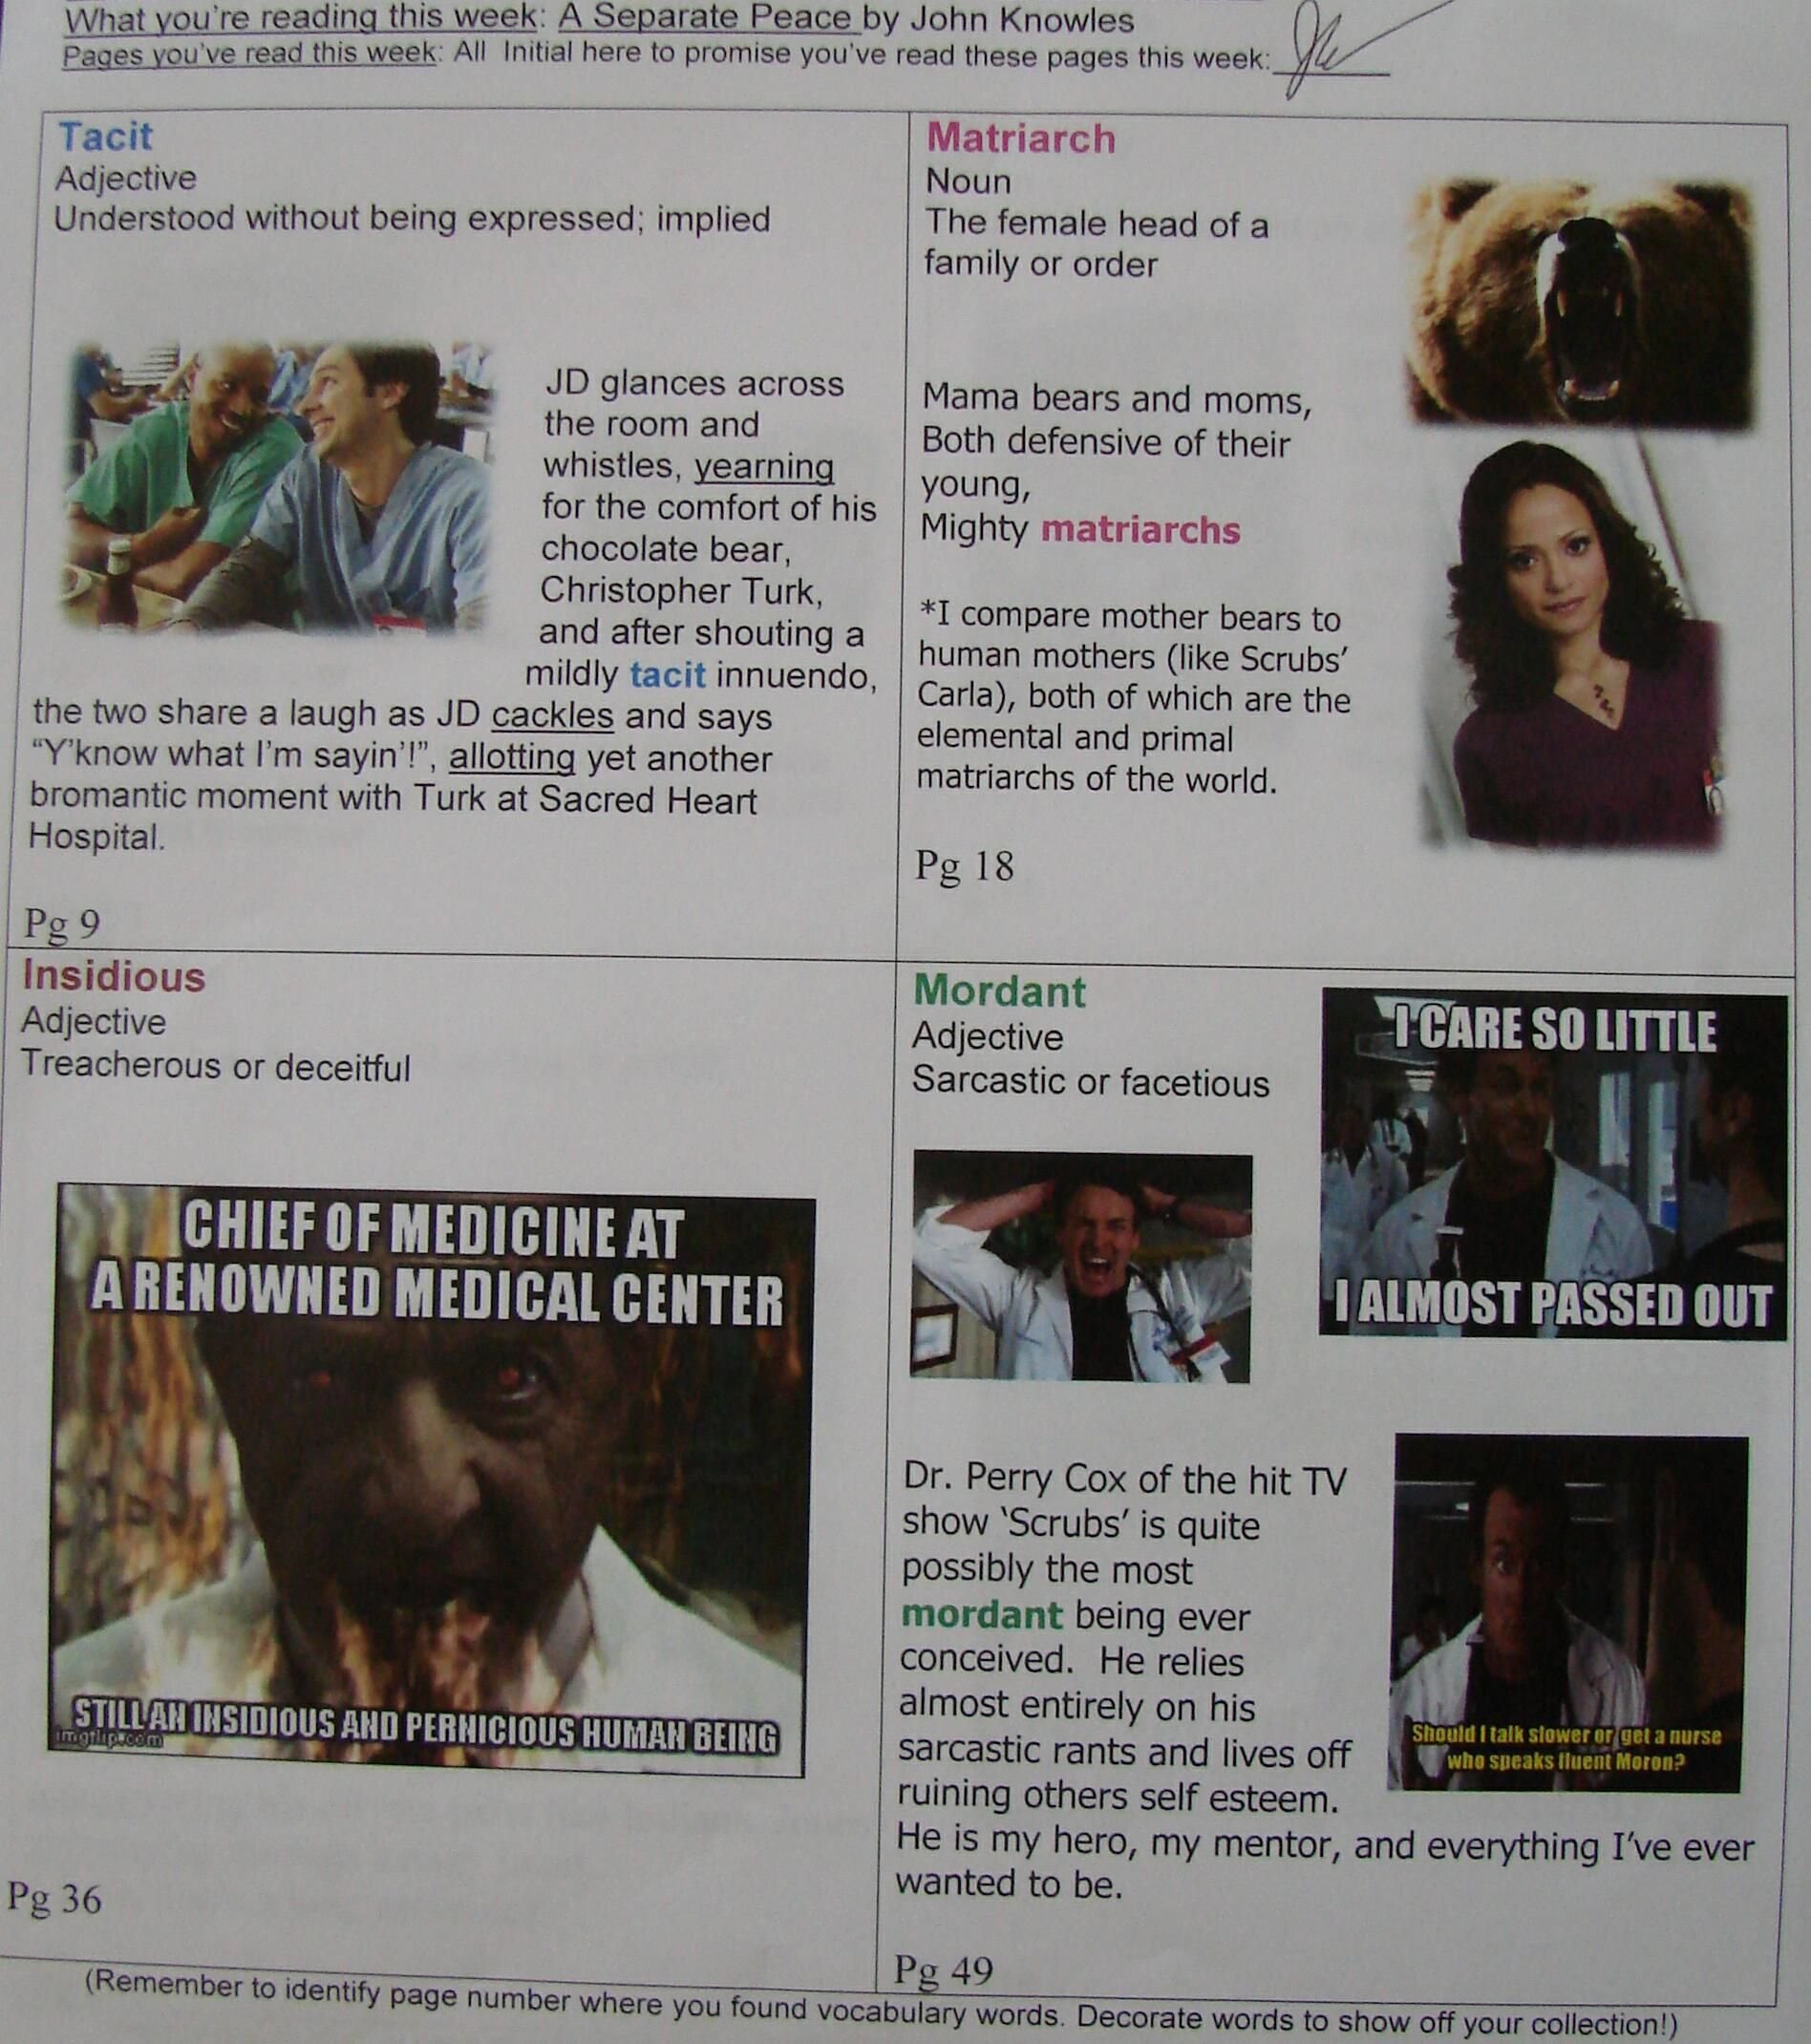 """8th grader Jaysen is currently in love with the syndicated TV show """"Scrubs,"""" and his vocabulary from """"A Separate Peace"""" found its way into multiple """"Scrubs"""" contexts here. My kids are creative! Learn about weekly vocabulary collecting here: http://www.corbettharrison.com/Vocabulary.htm"""